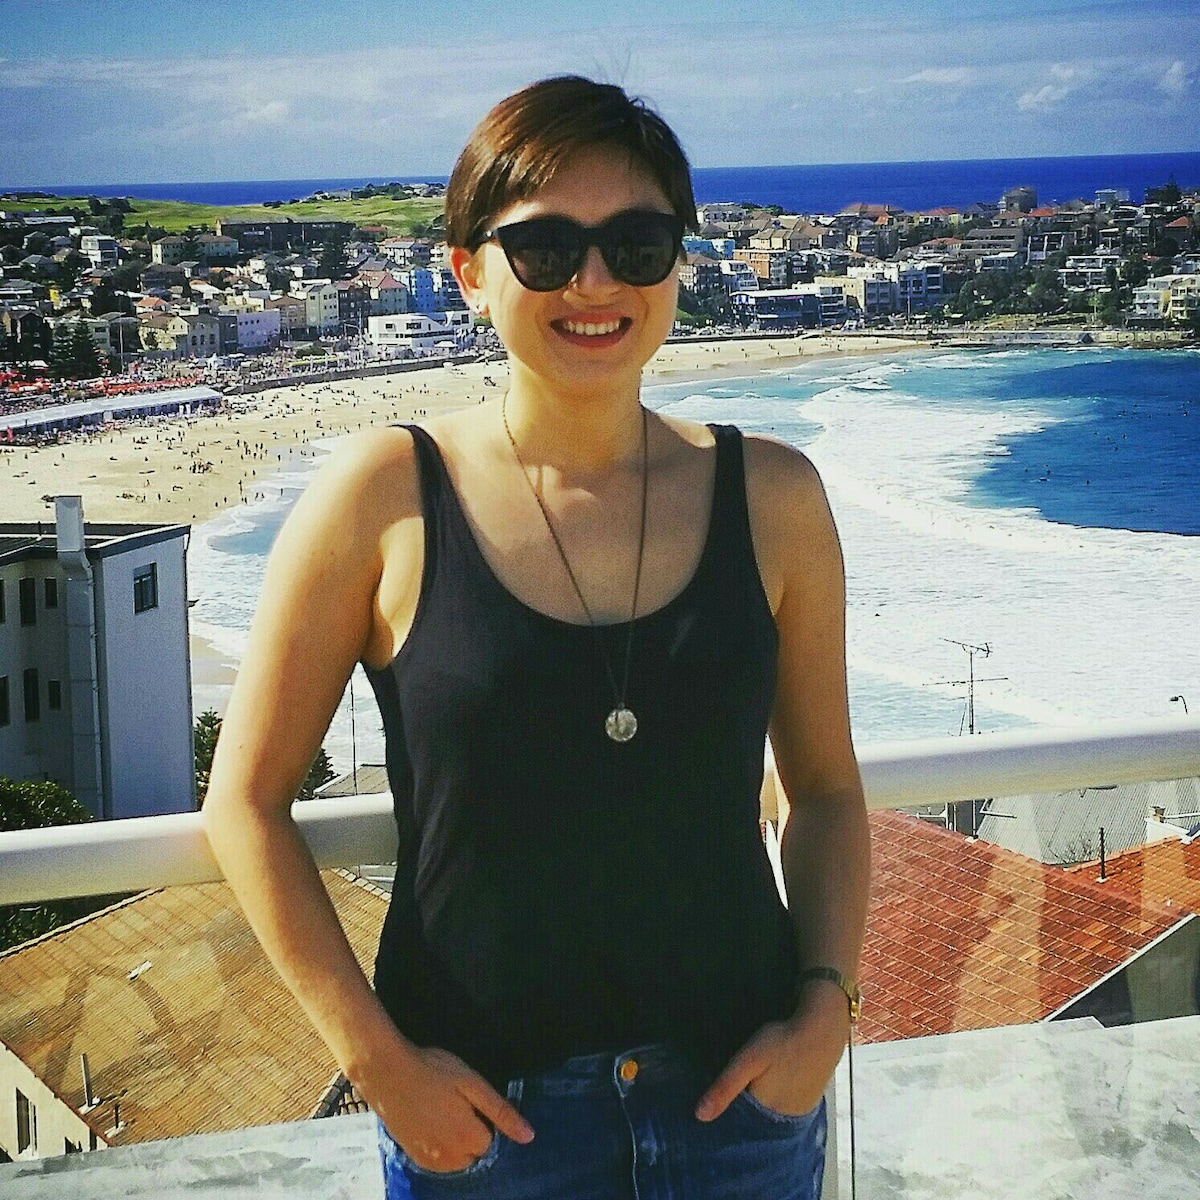 Olga from Bondi Beach